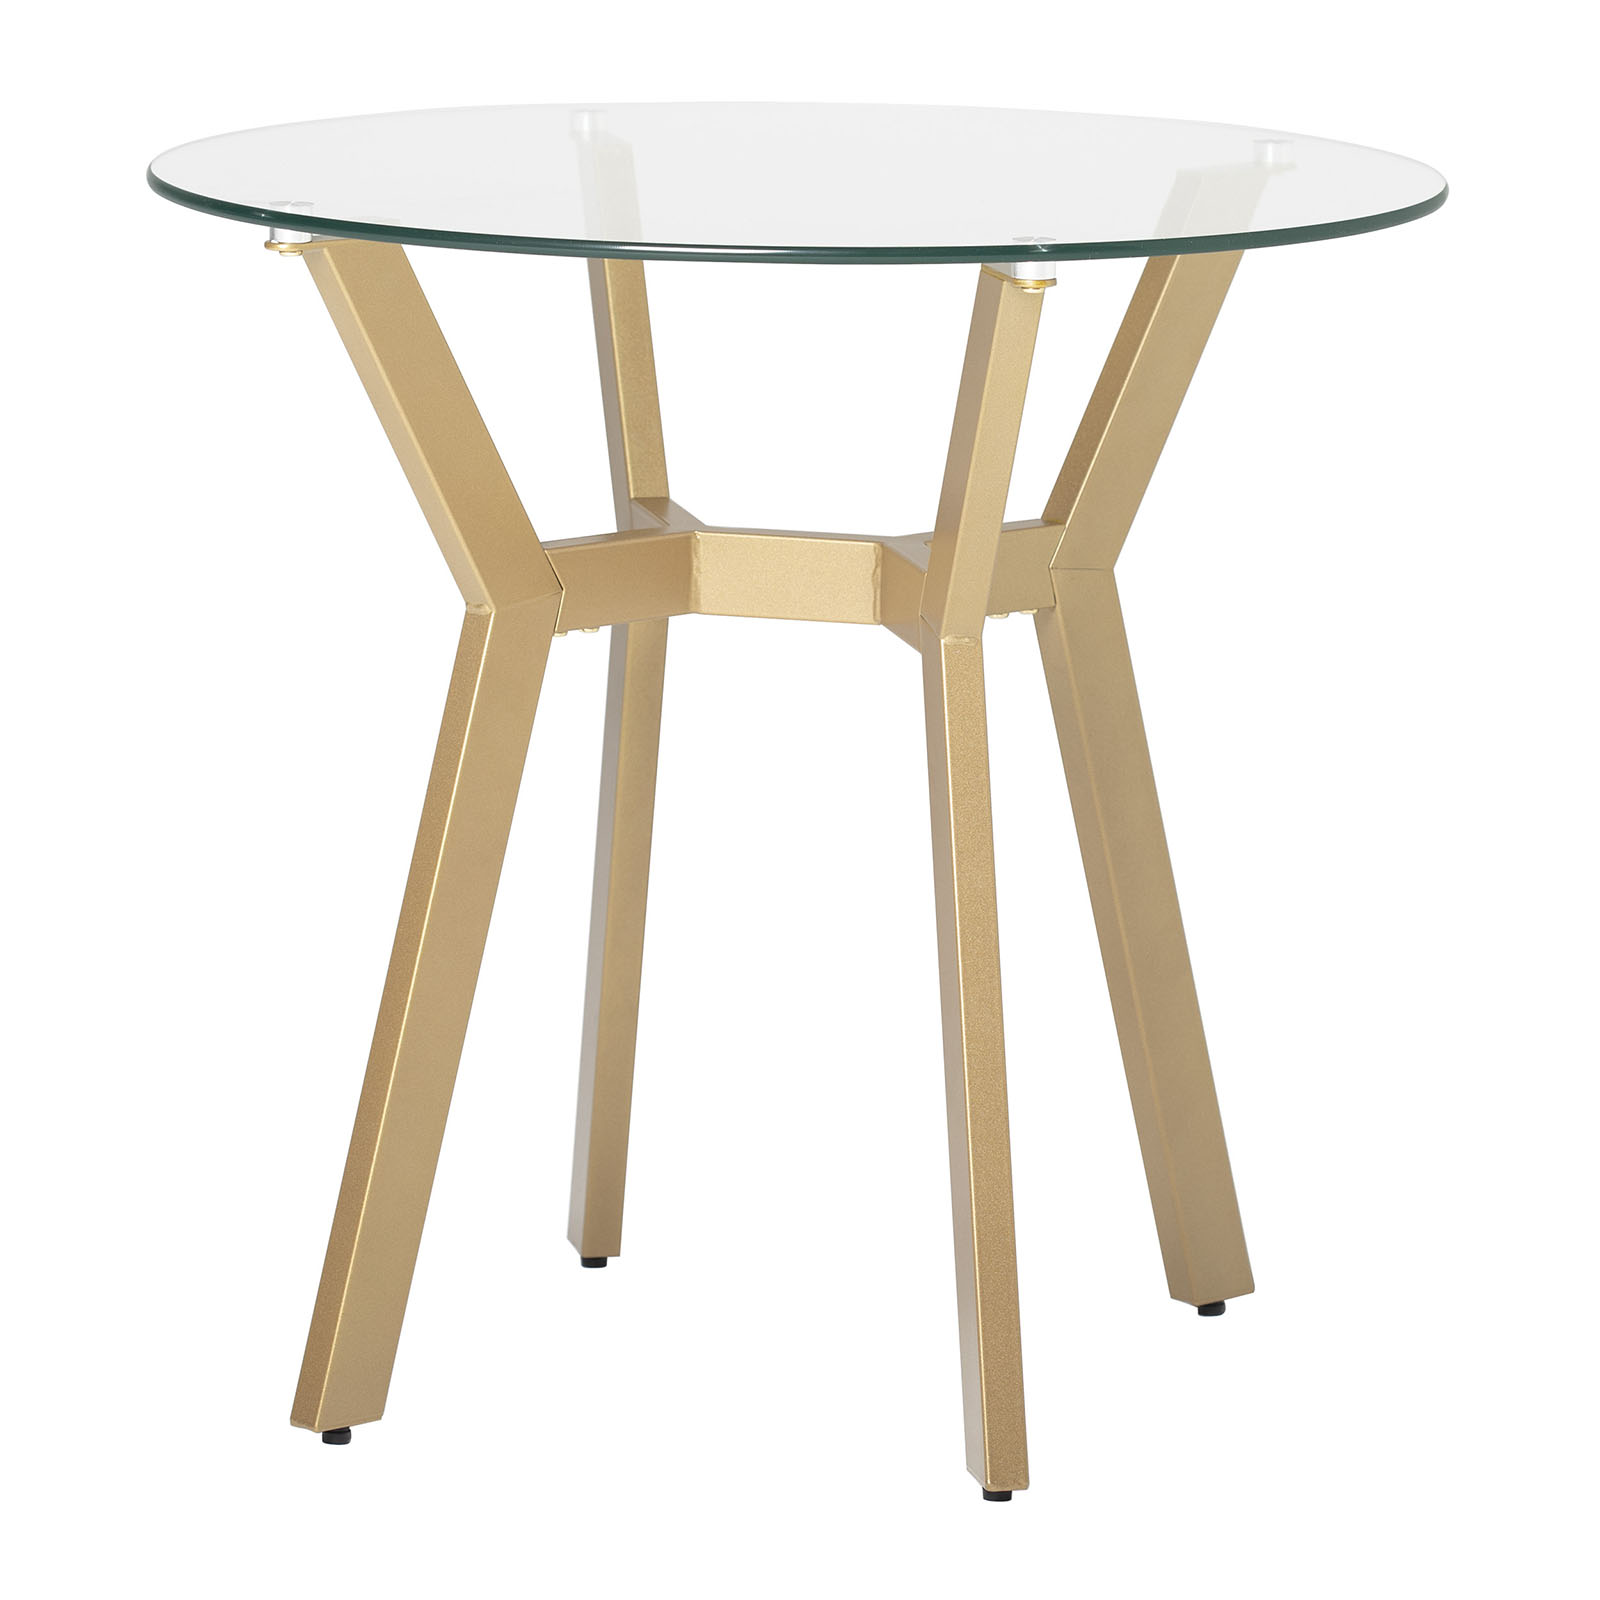 71040 ArchTech Round End Table back